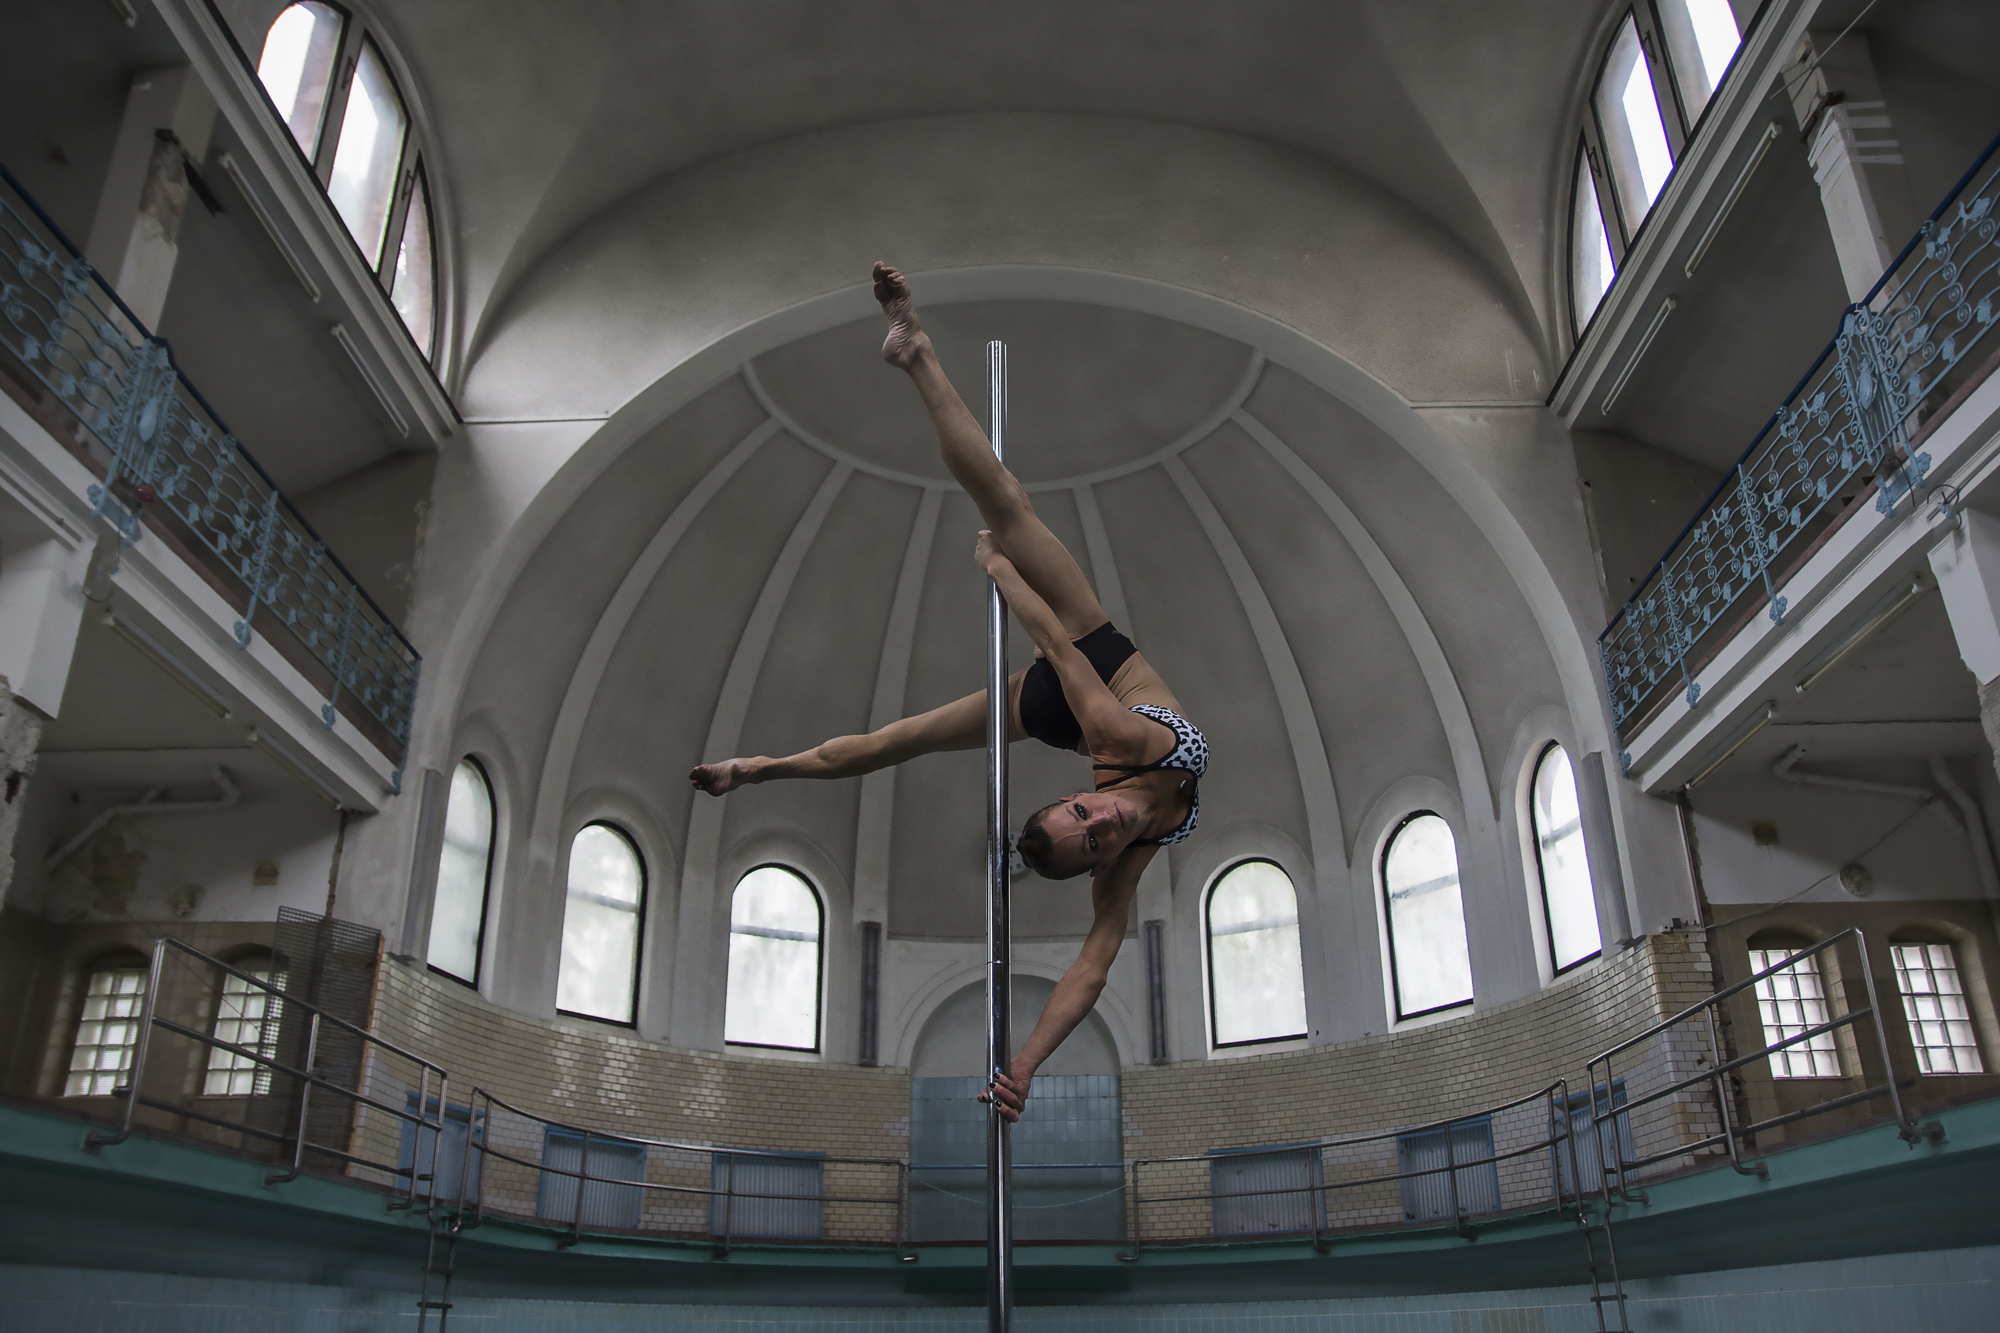 Yvonne Haug Pole Dance